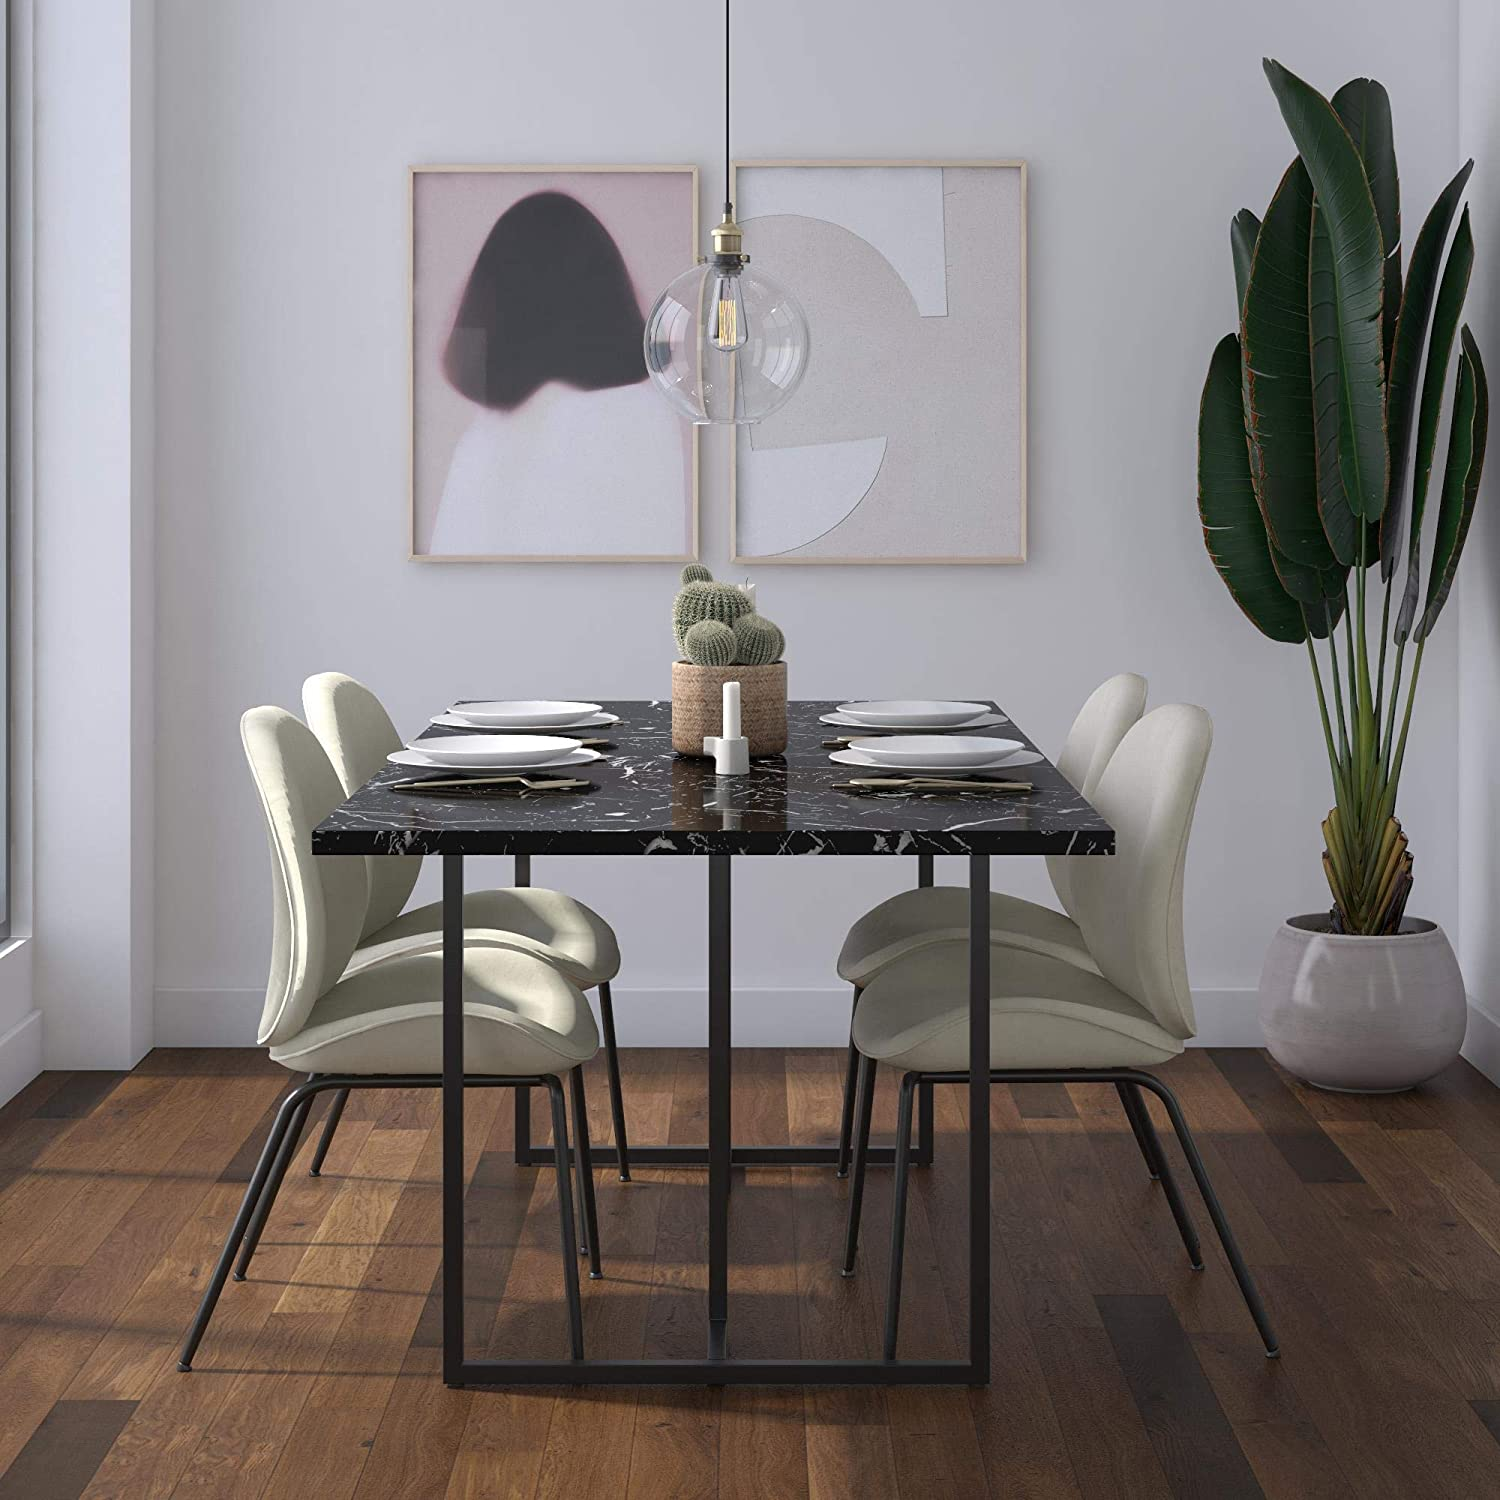 Cosmoliving Edith Rectangular Dining Table Black Faux Marble Black Base Amazon Ca Home Kitchen